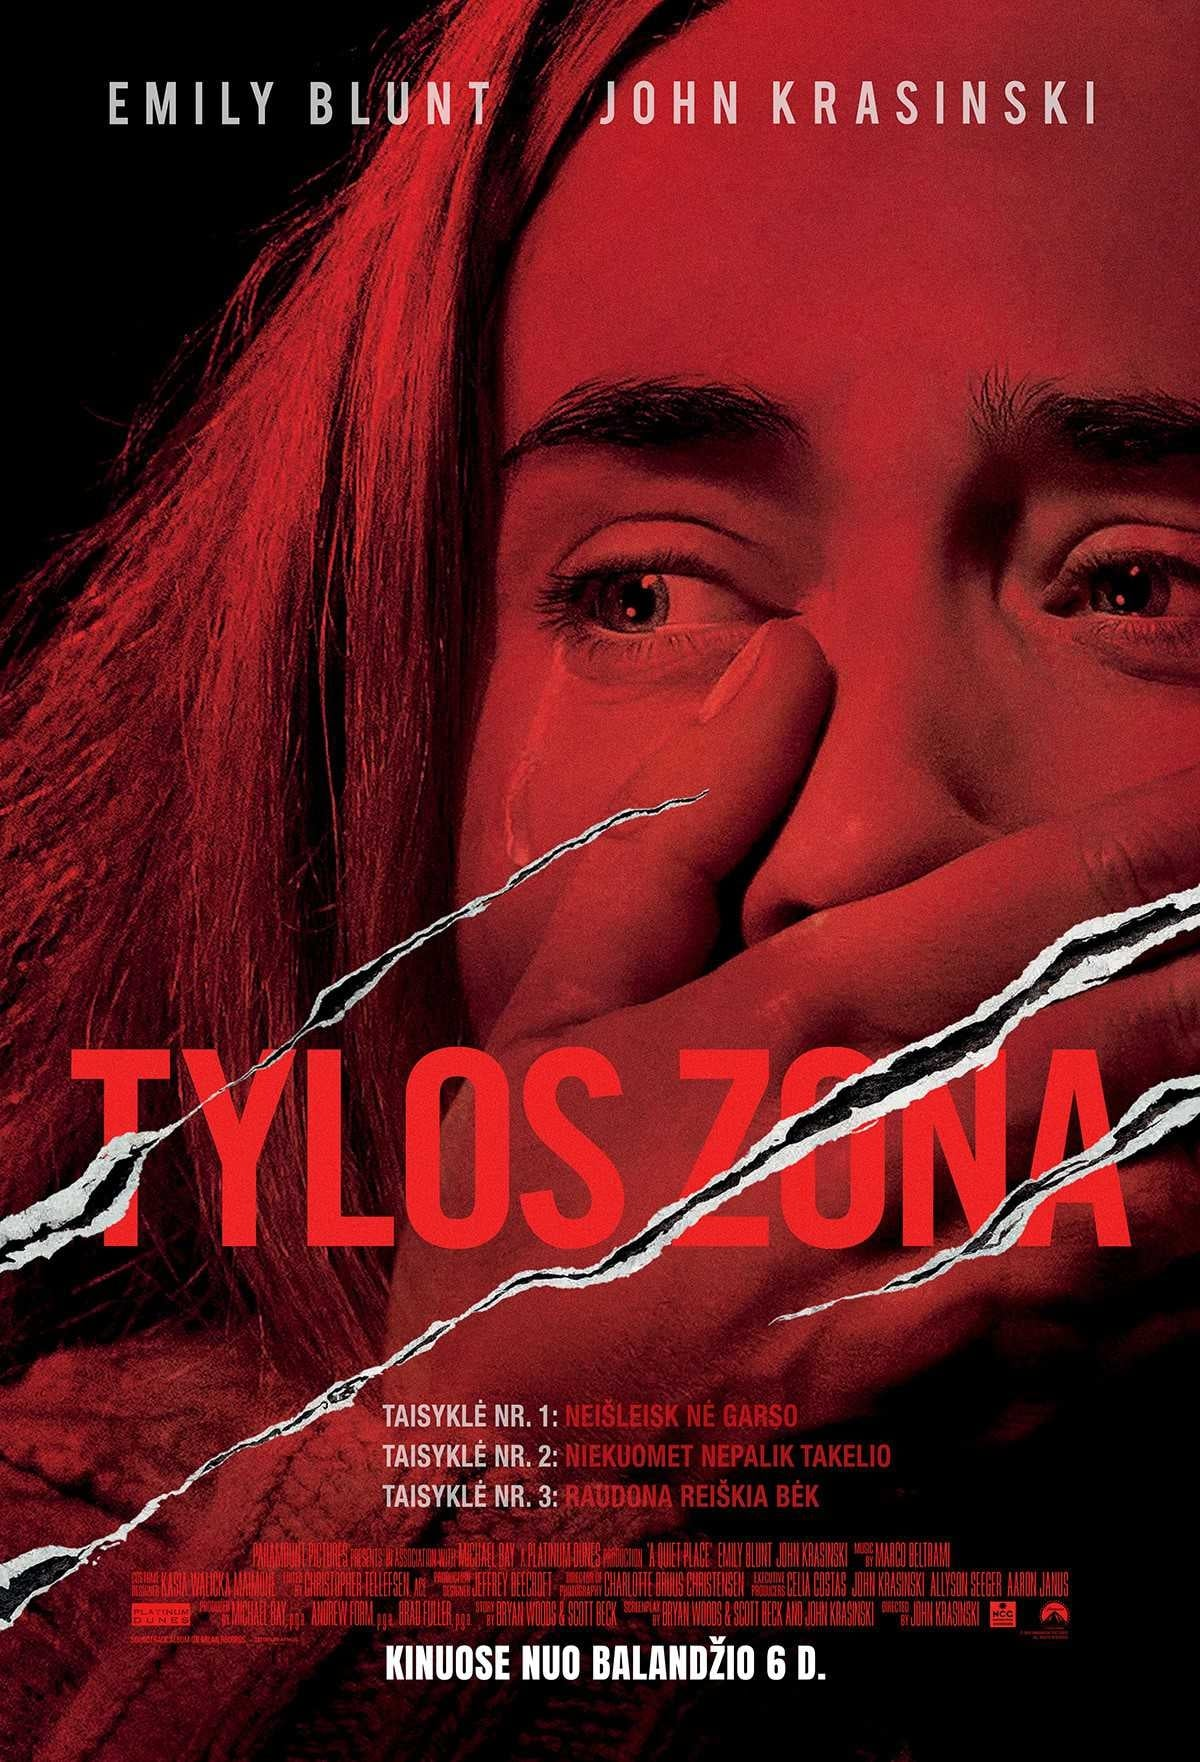 Tylos zona / A Quiet Place (2018)